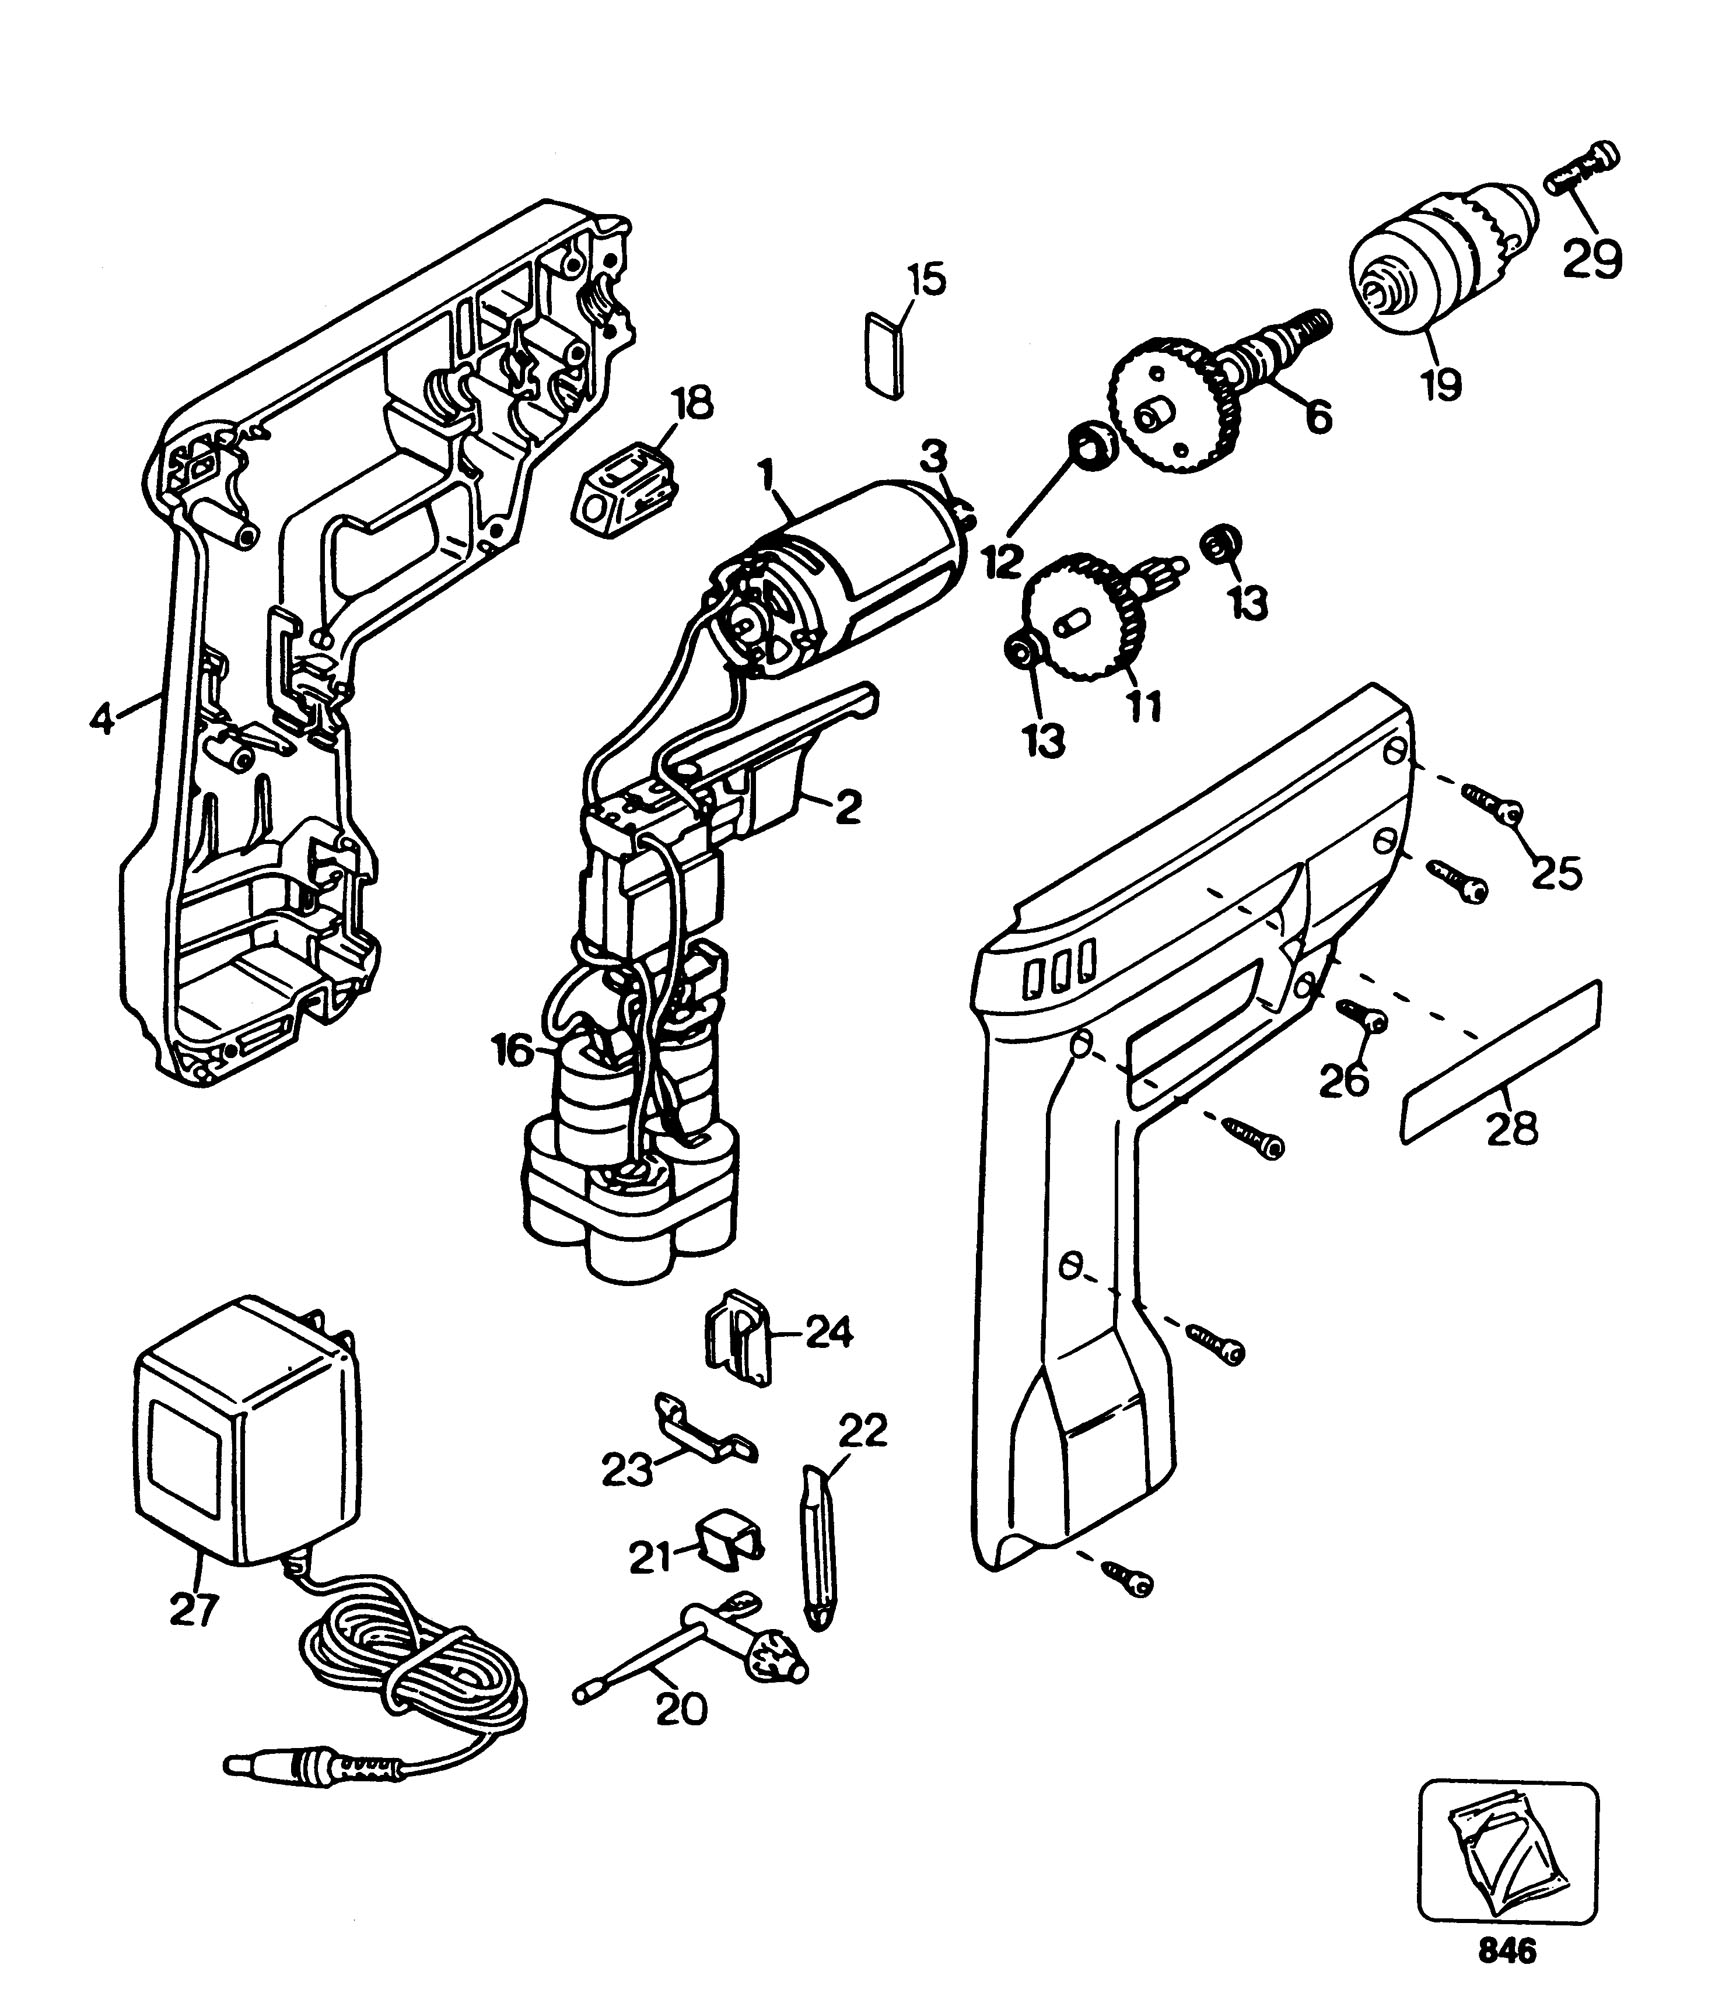 Spares for Black & Decker 9013 Cordless Drill (type 3